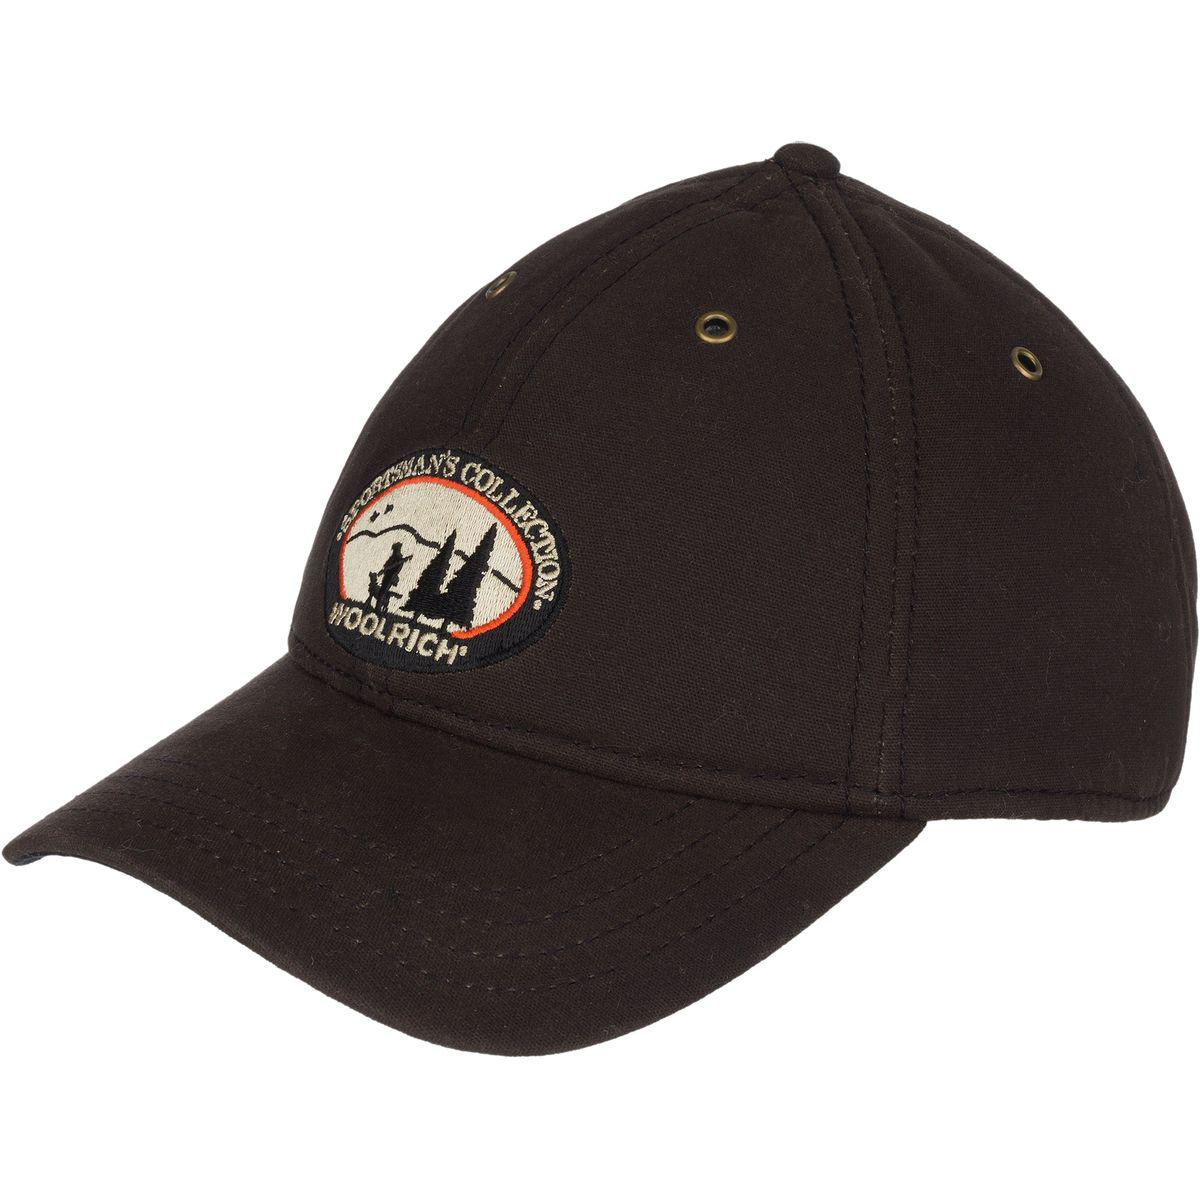 ab9fd2f9 Woolrich Oil Cloth Baseball Cap in Brown for Men - Lyst